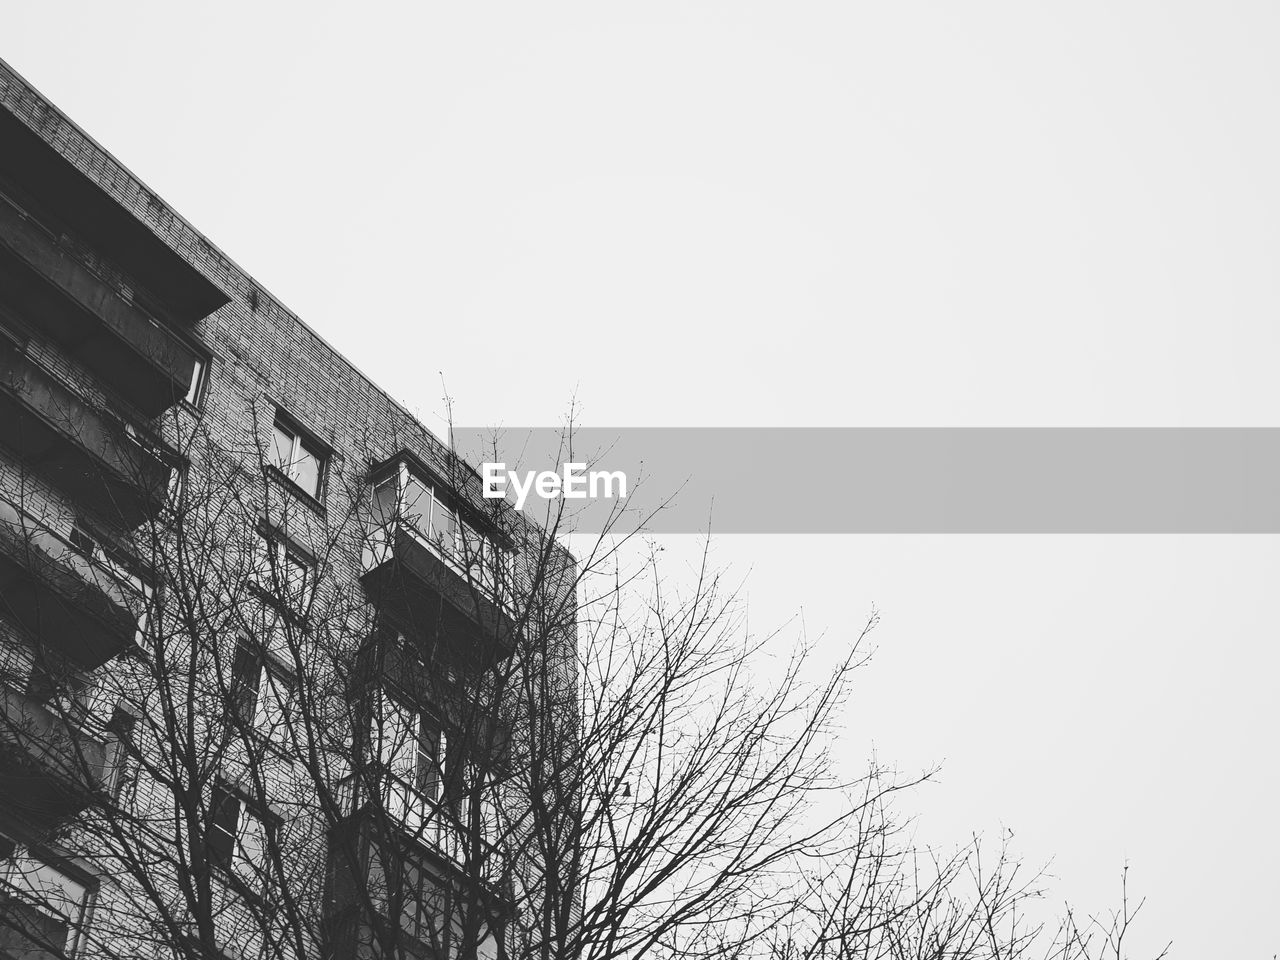 sky, architecture, built structure, low angle view, building exterior, copy space, tree, clear sky, no people, bare tree, nature, building, day, outdoors, industry, plant, construction industry, window, residential district, abandoned, apartment, height